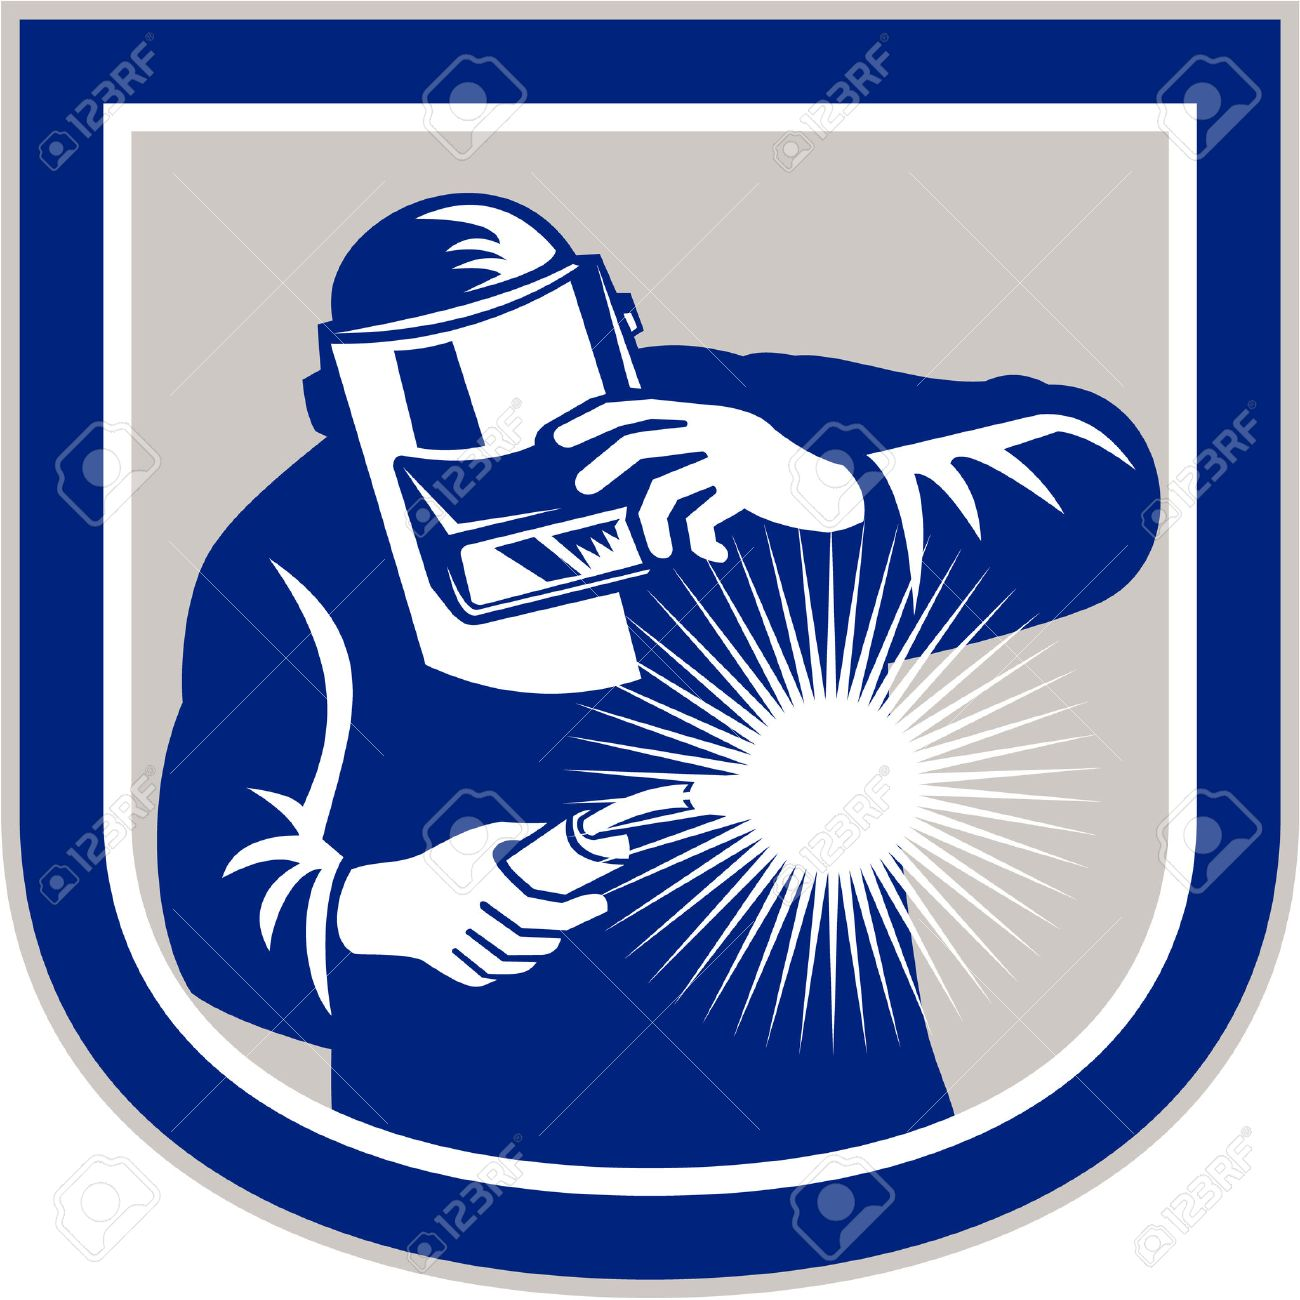 Illustration of welder worker working using welding torch viewed from front holding his visor set inside shield crest shape on isolated background done in retro style. Stock Vector - 27669784